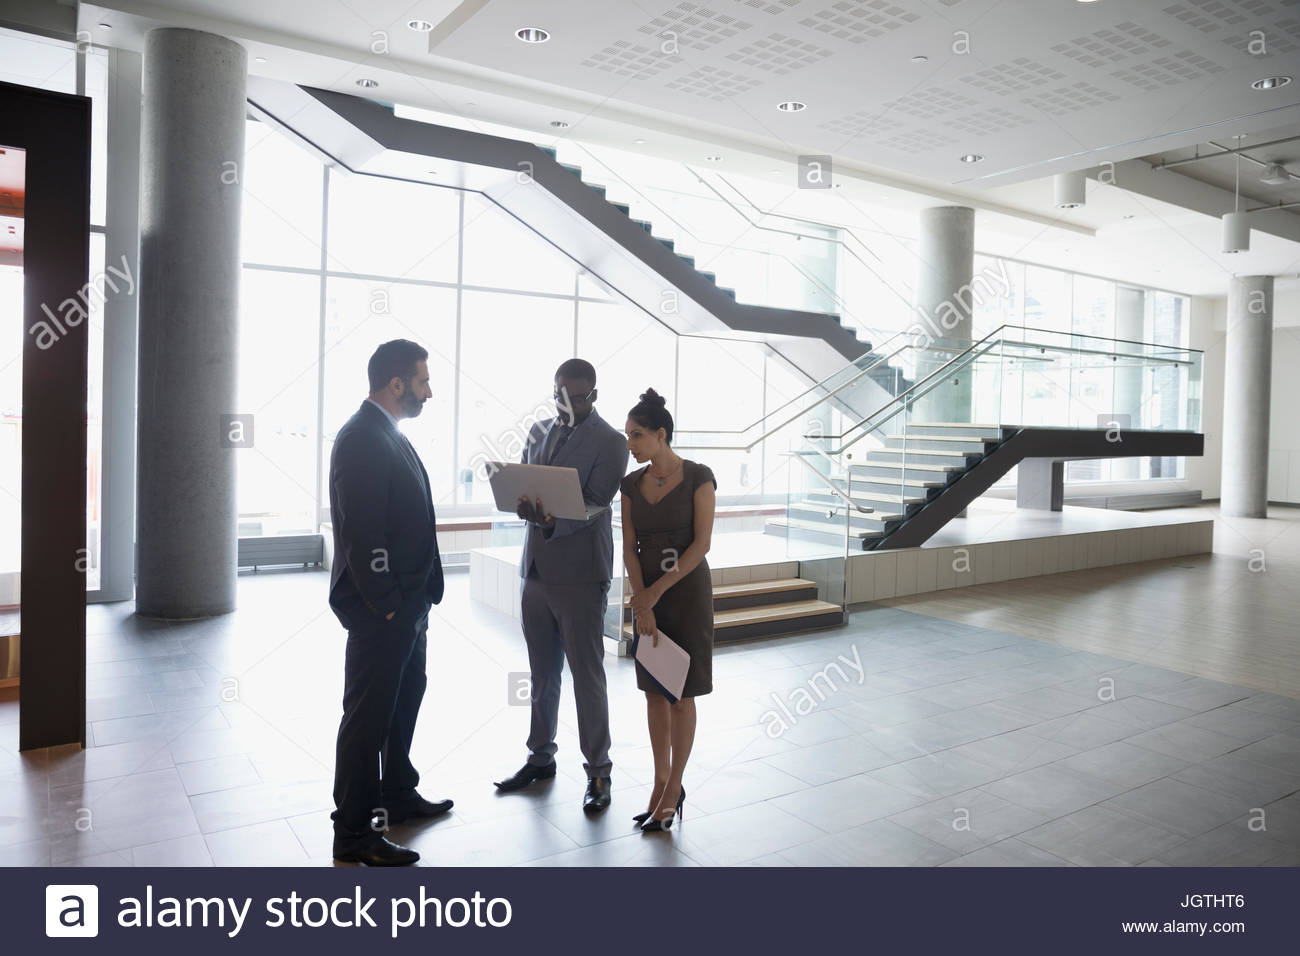 Modern office lobby High Tech Office Business People Talking Using Laptop In Modern Office Lobby Stock Image Studio7creativeco Modern Office Lobby Stock Photos Modern Office Lobby Stock Images